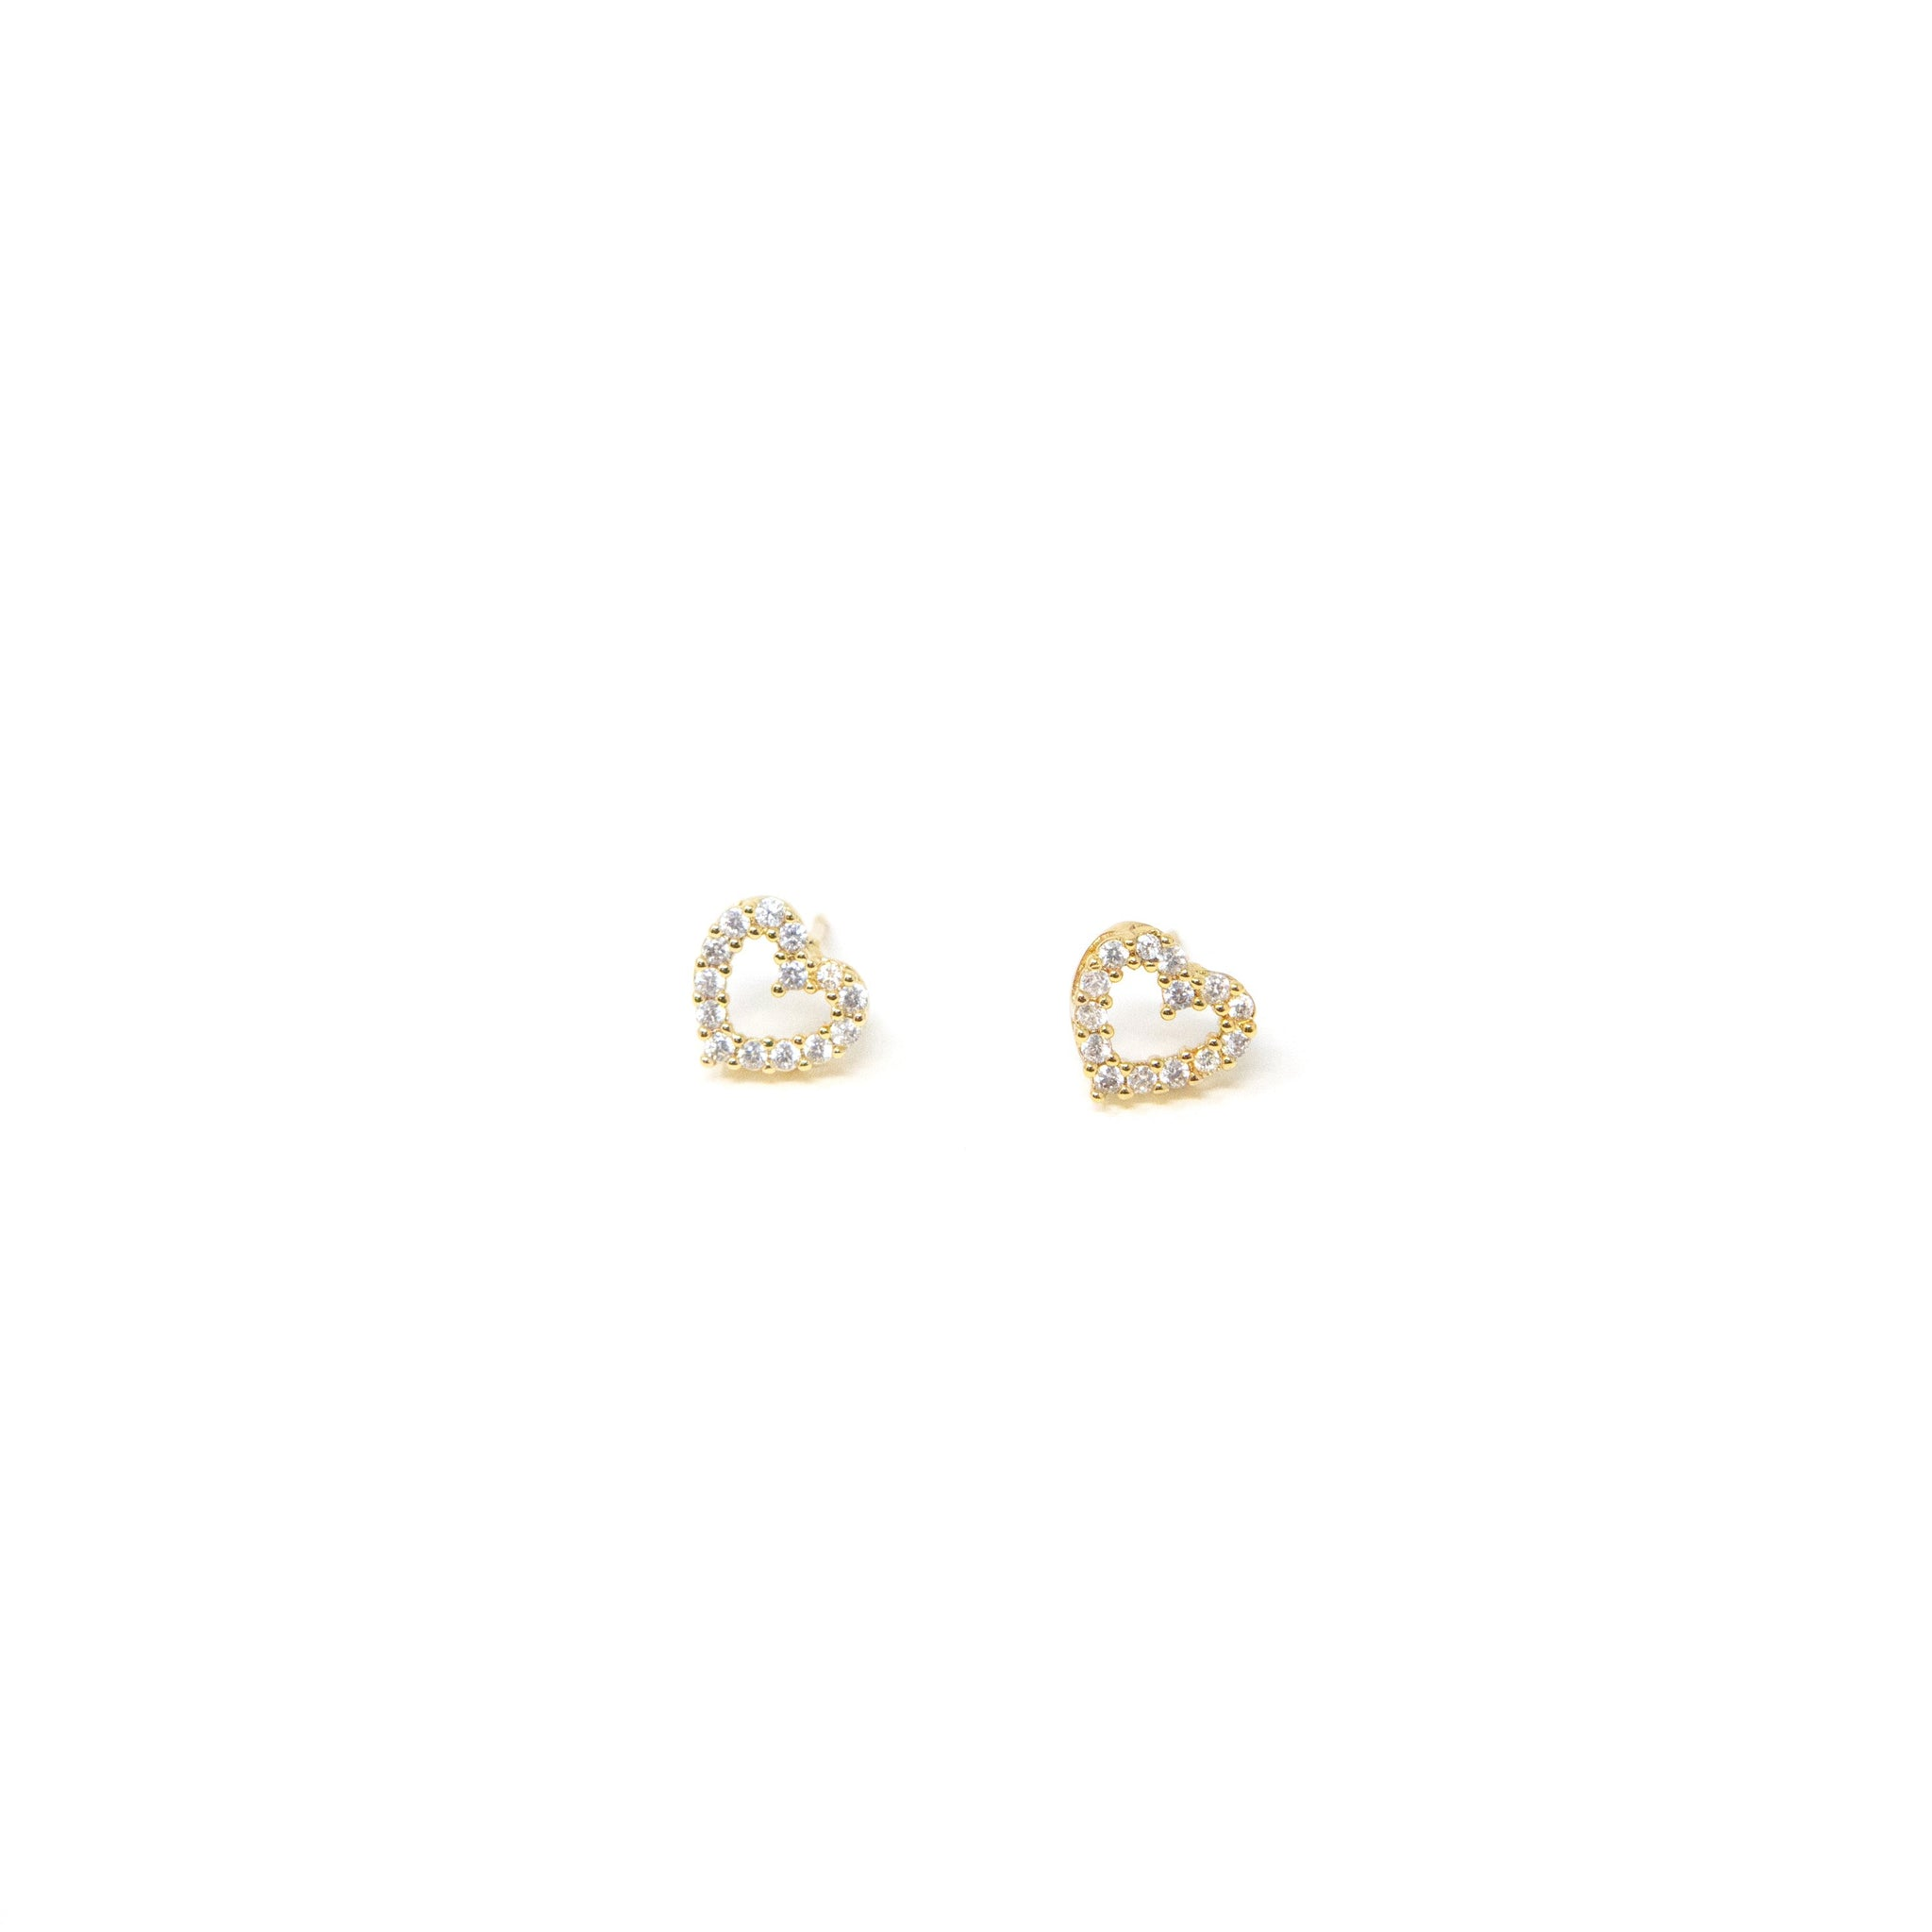 Heart Studs in Gold and Crystal